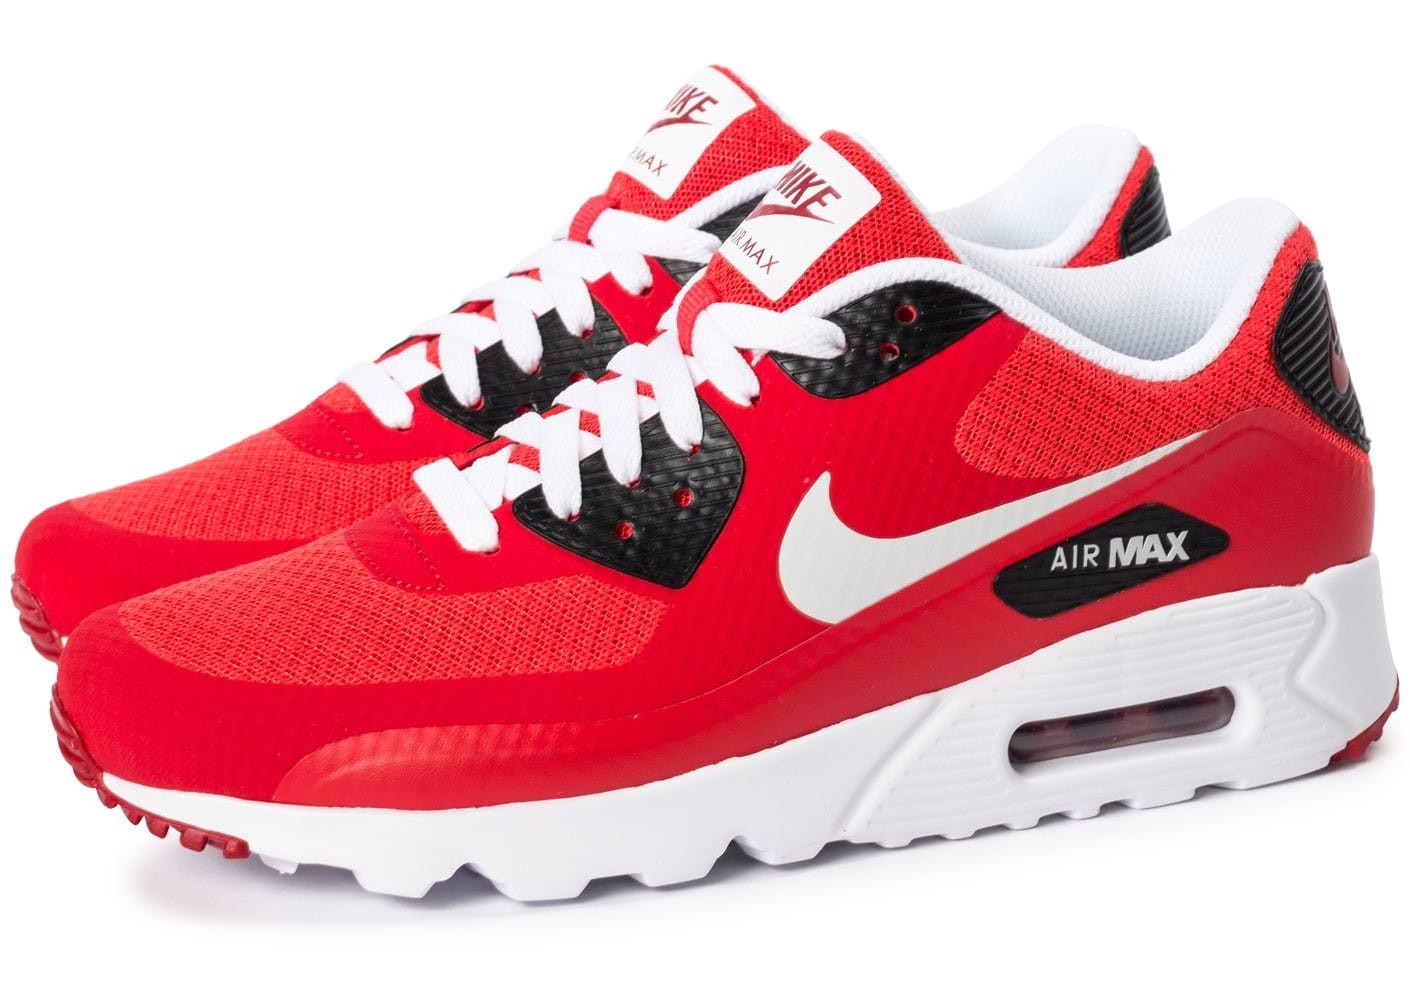 NIKE AIR MAX 90 ESSENTIAL ROUGE veDoYVE